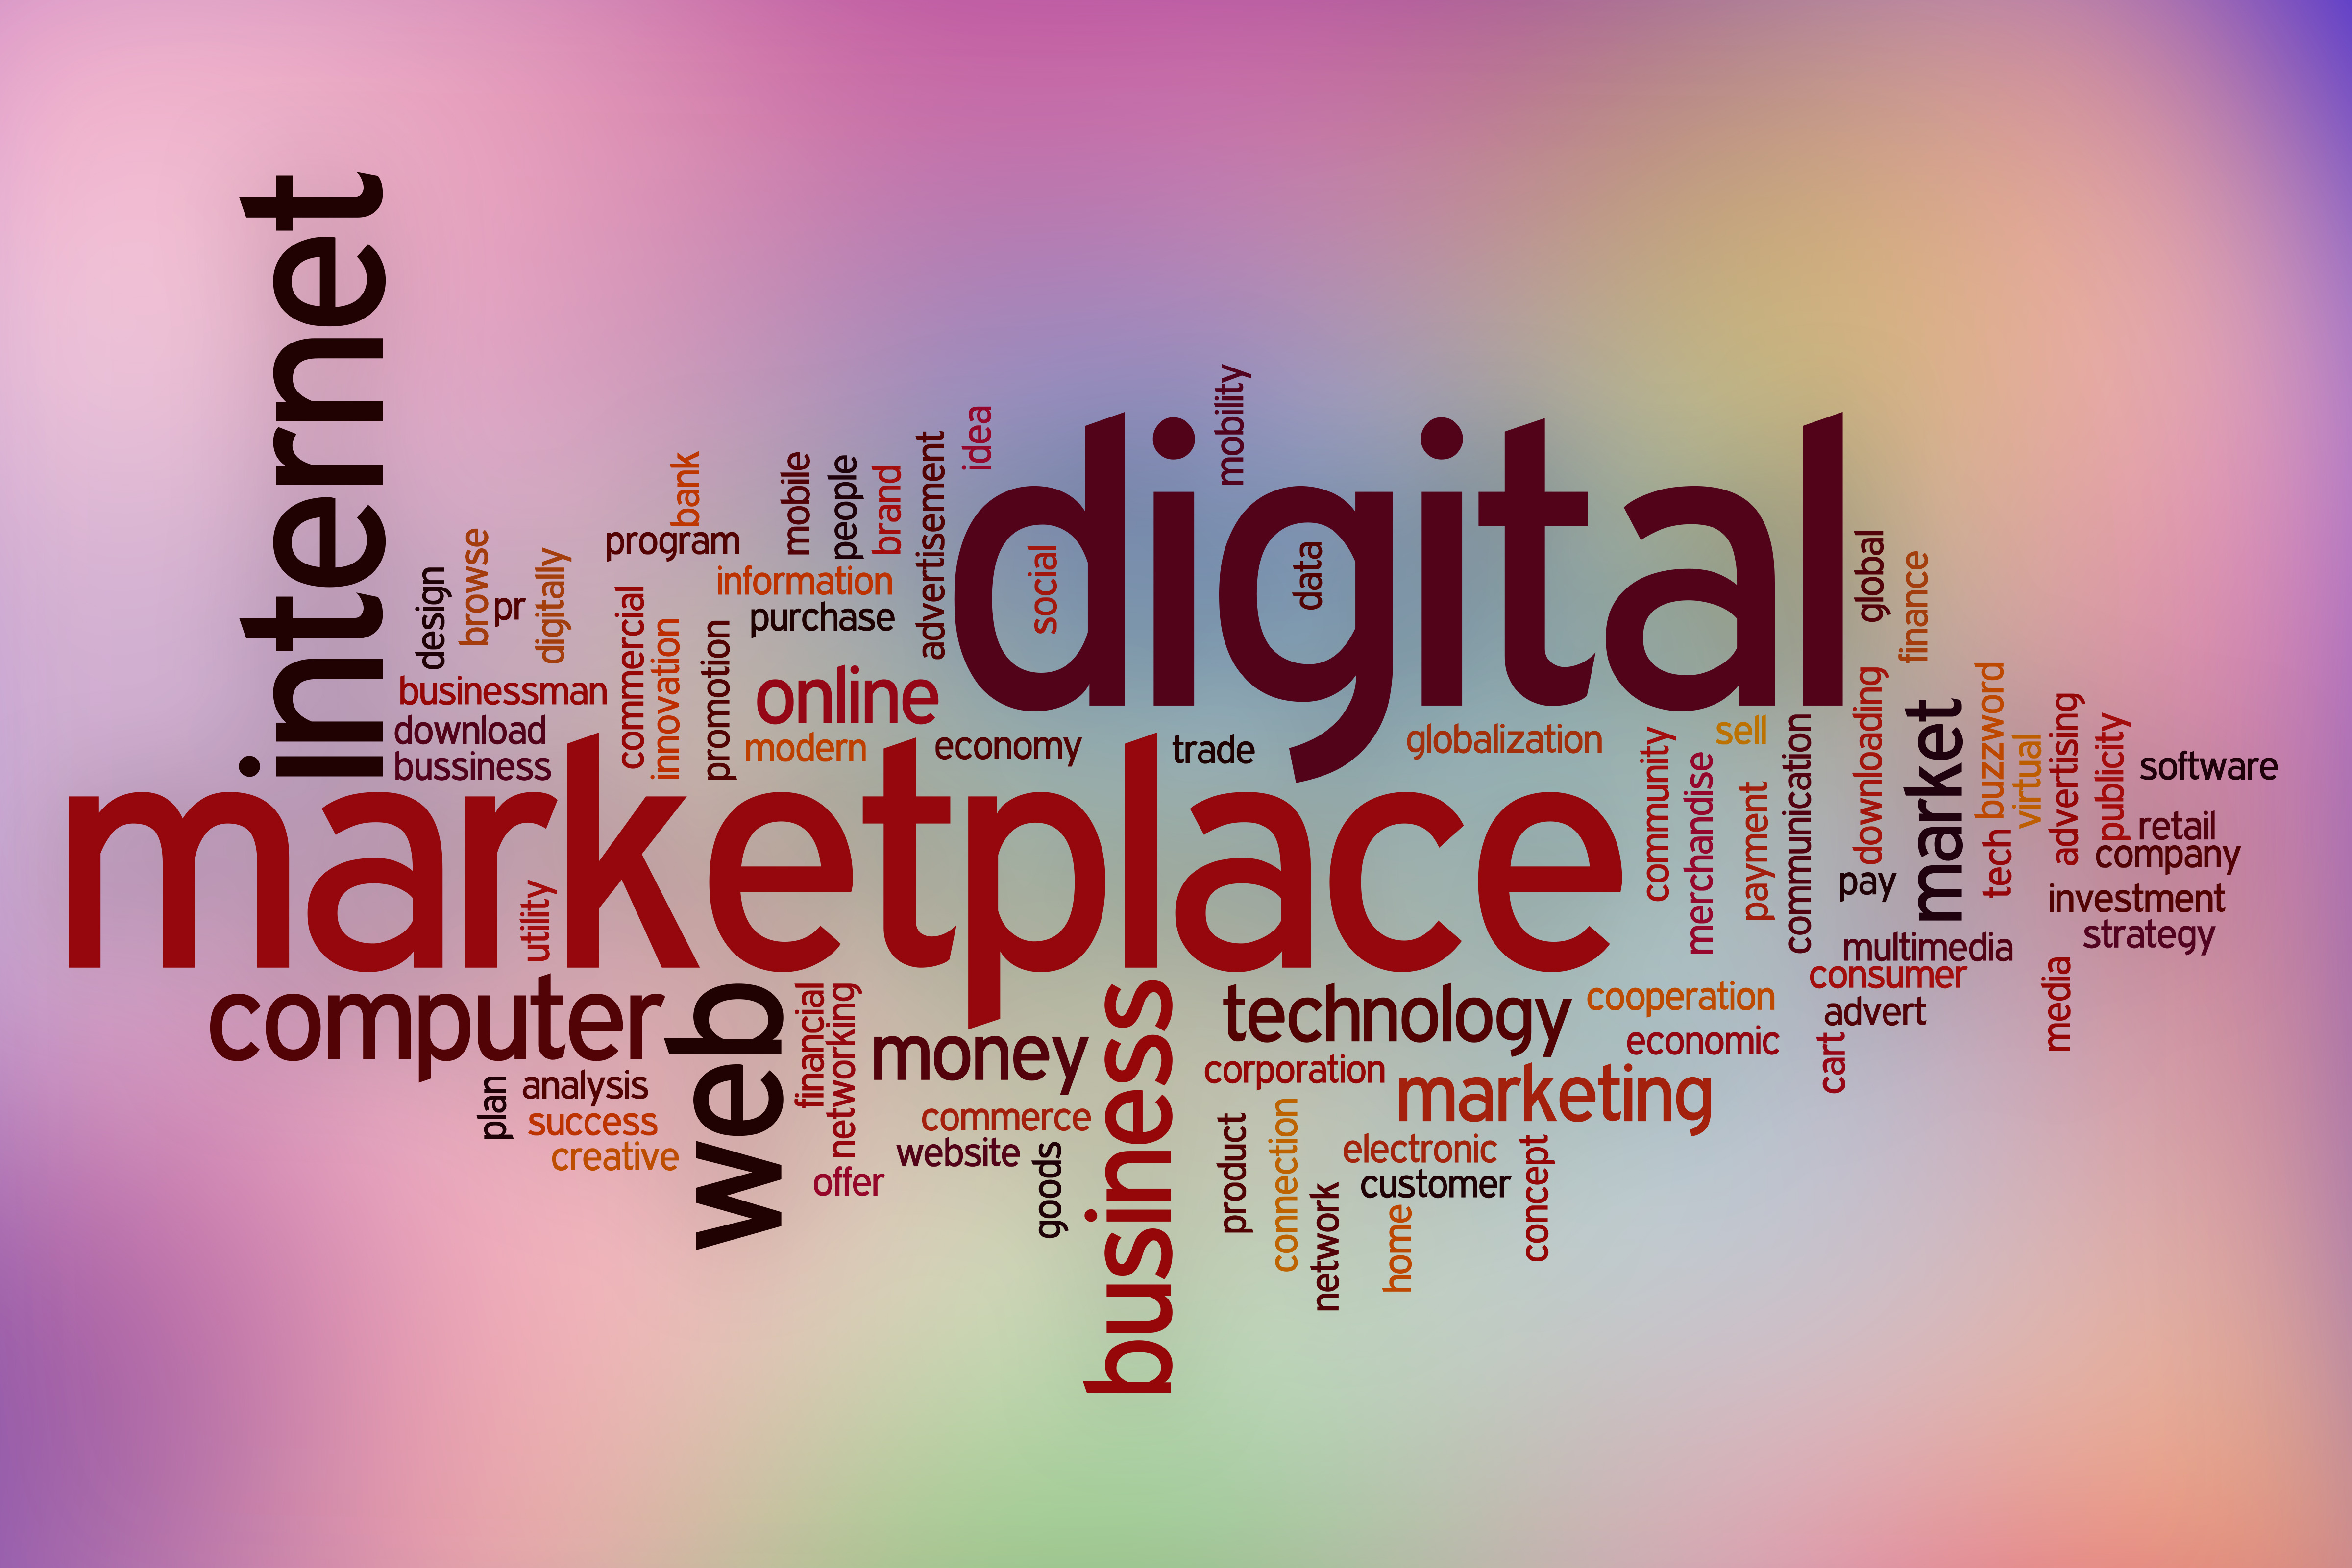 ¿Conoces los marketplaces dominantes en Oriente Medio?